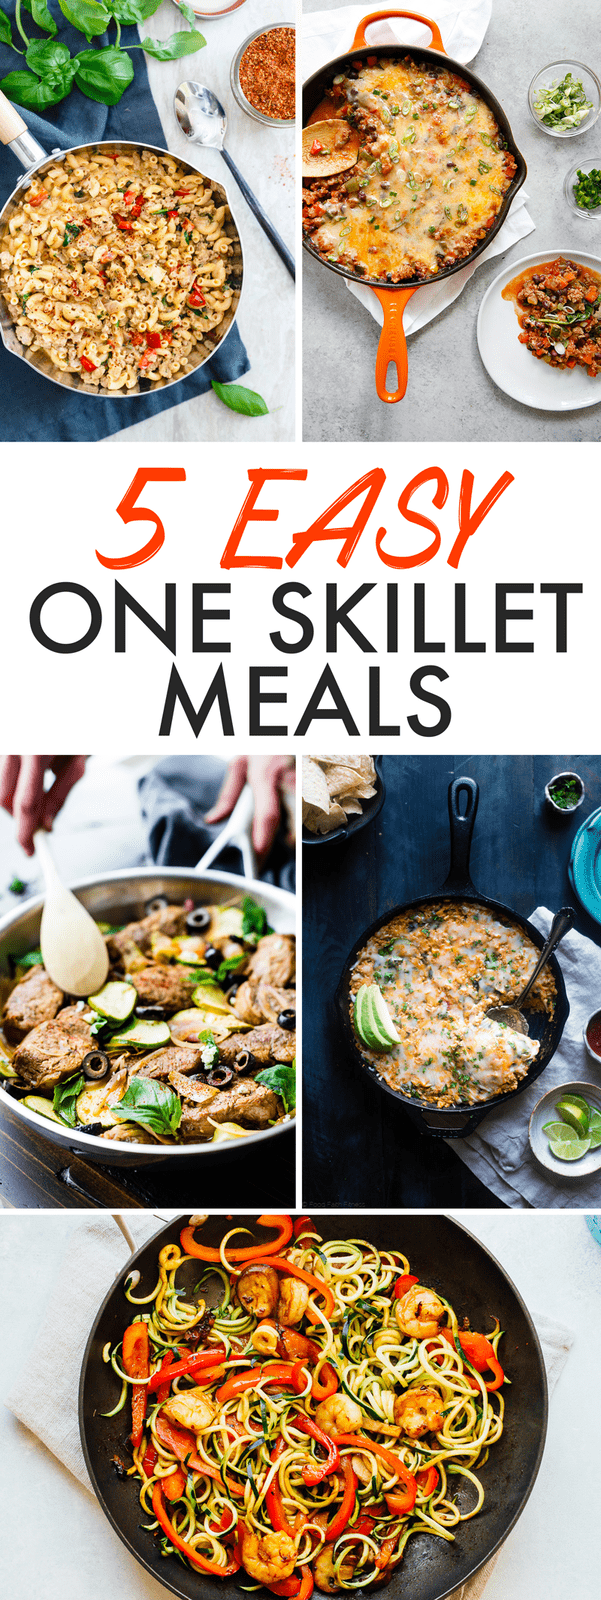 5 Easy + Healthy One Skillet Meals -- these one pan wonders make weeknight dinner a breeze.